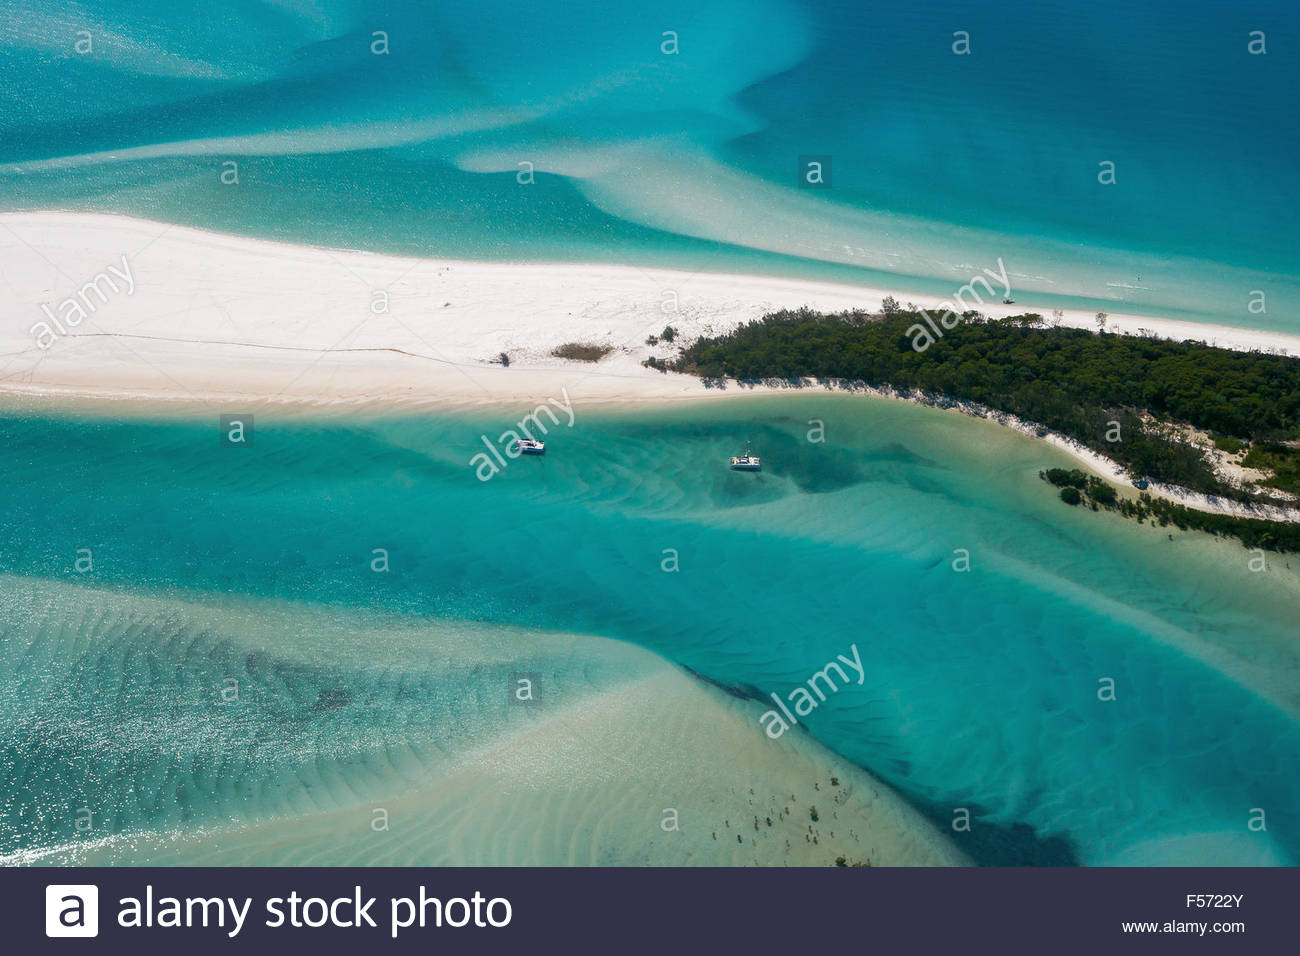 Aerial view of Whitehaven beach and the Hill Inlet on whitsunday island - Whitsundays - Queensland (Australia) - Stock Image